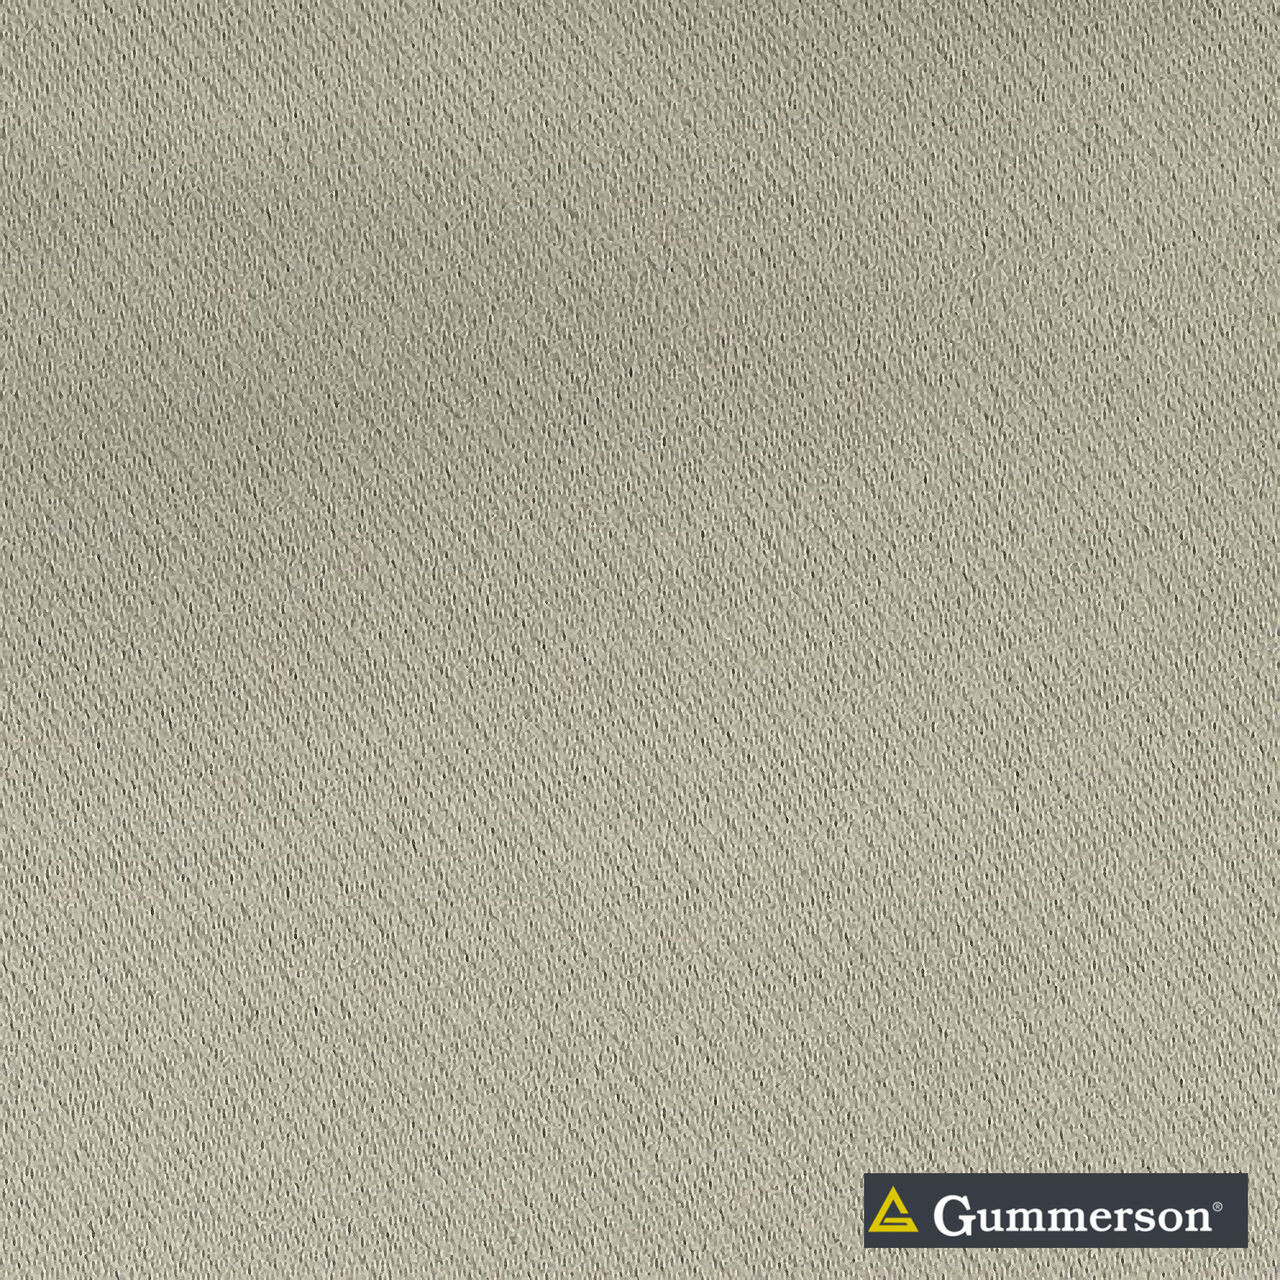 Gummerson - Continuous-Softweave Natural Room-Darkening 290cm  | Curtain Fabric - Beige, Fire Retardant, Plain, Synthetic, Tan, Taupe, Transitional, Washable, Weave, Softweave